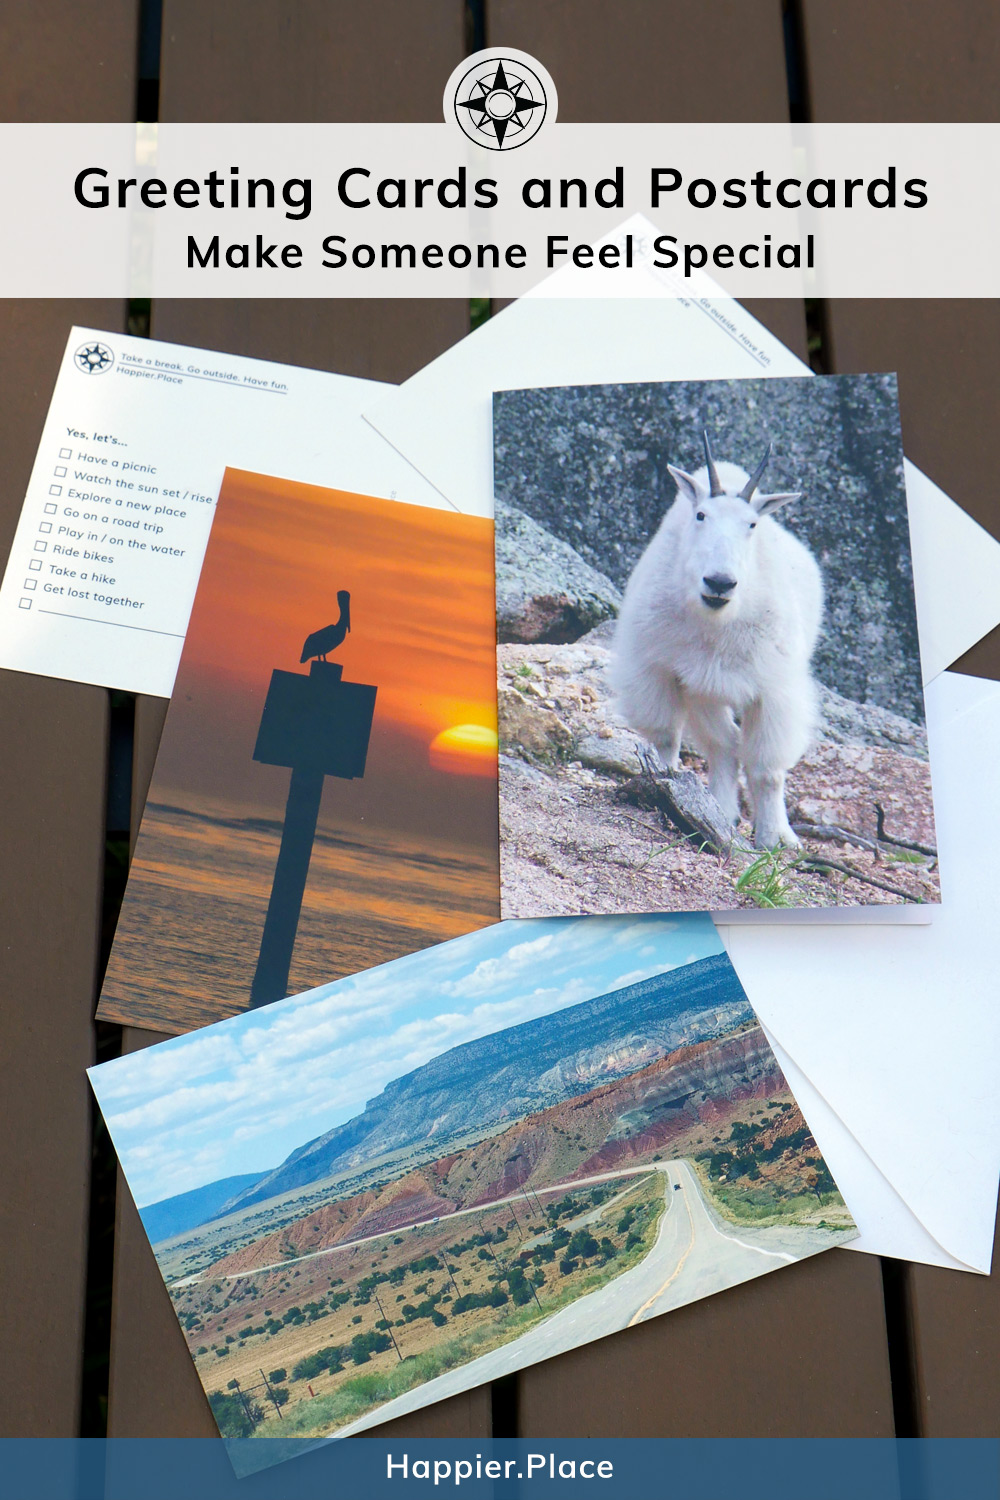 Make someone feel special with Happier Place Cards and Postcards, mountain goat, pelican, sunset, highway, New Mexico